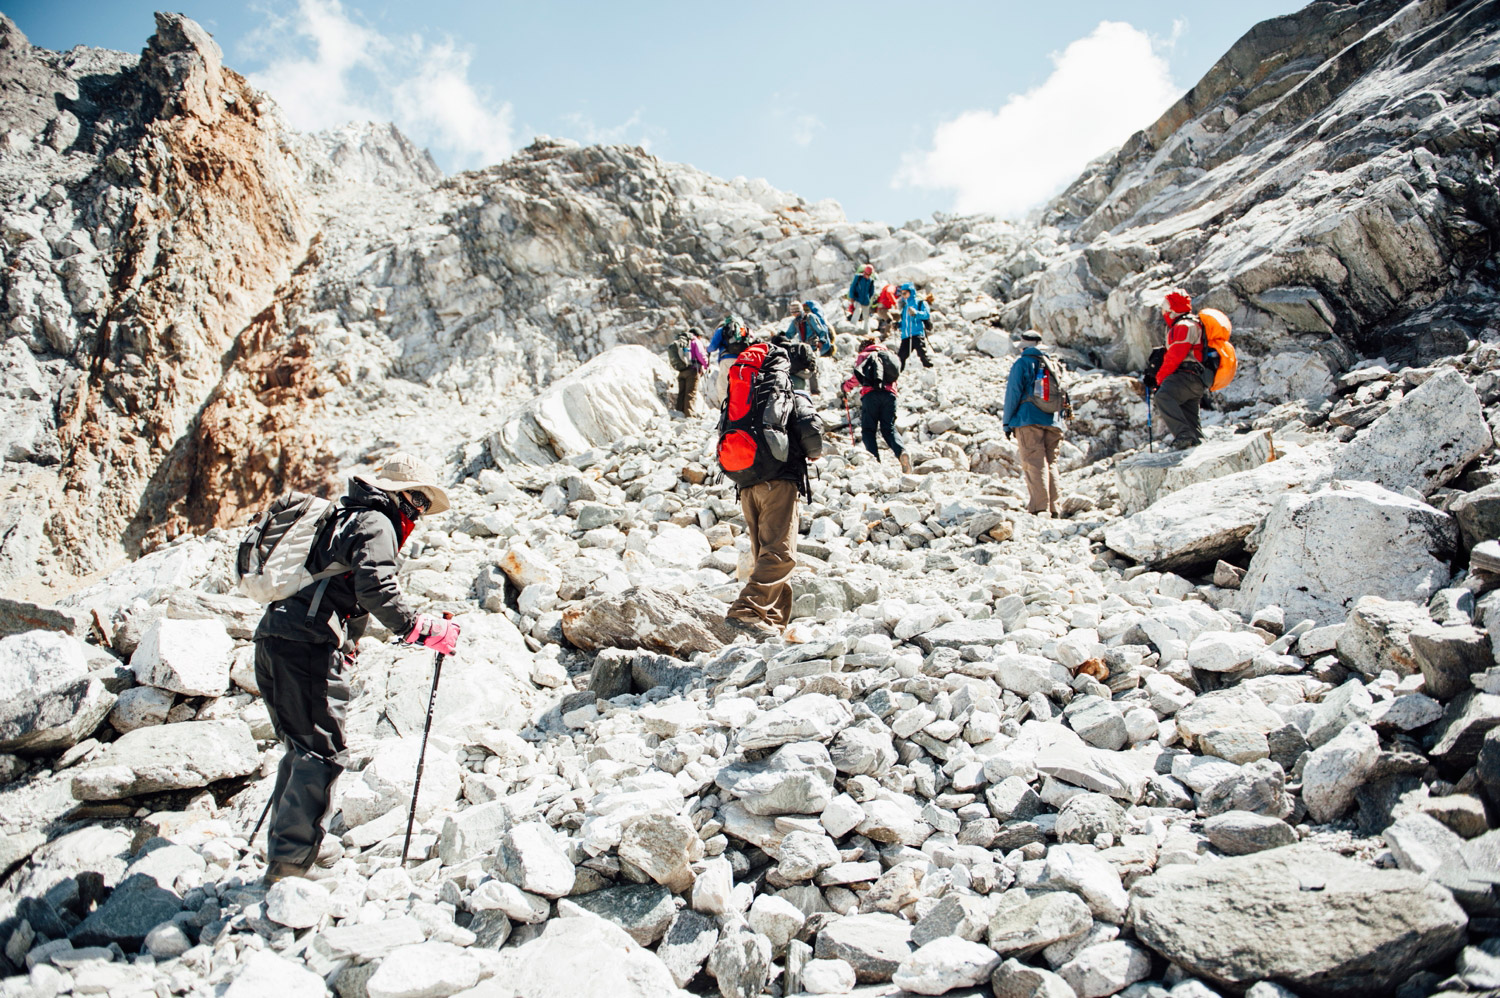 Katie_Mitchell_Photography_Travel_Photography_Everest_Nepal_11.jpg